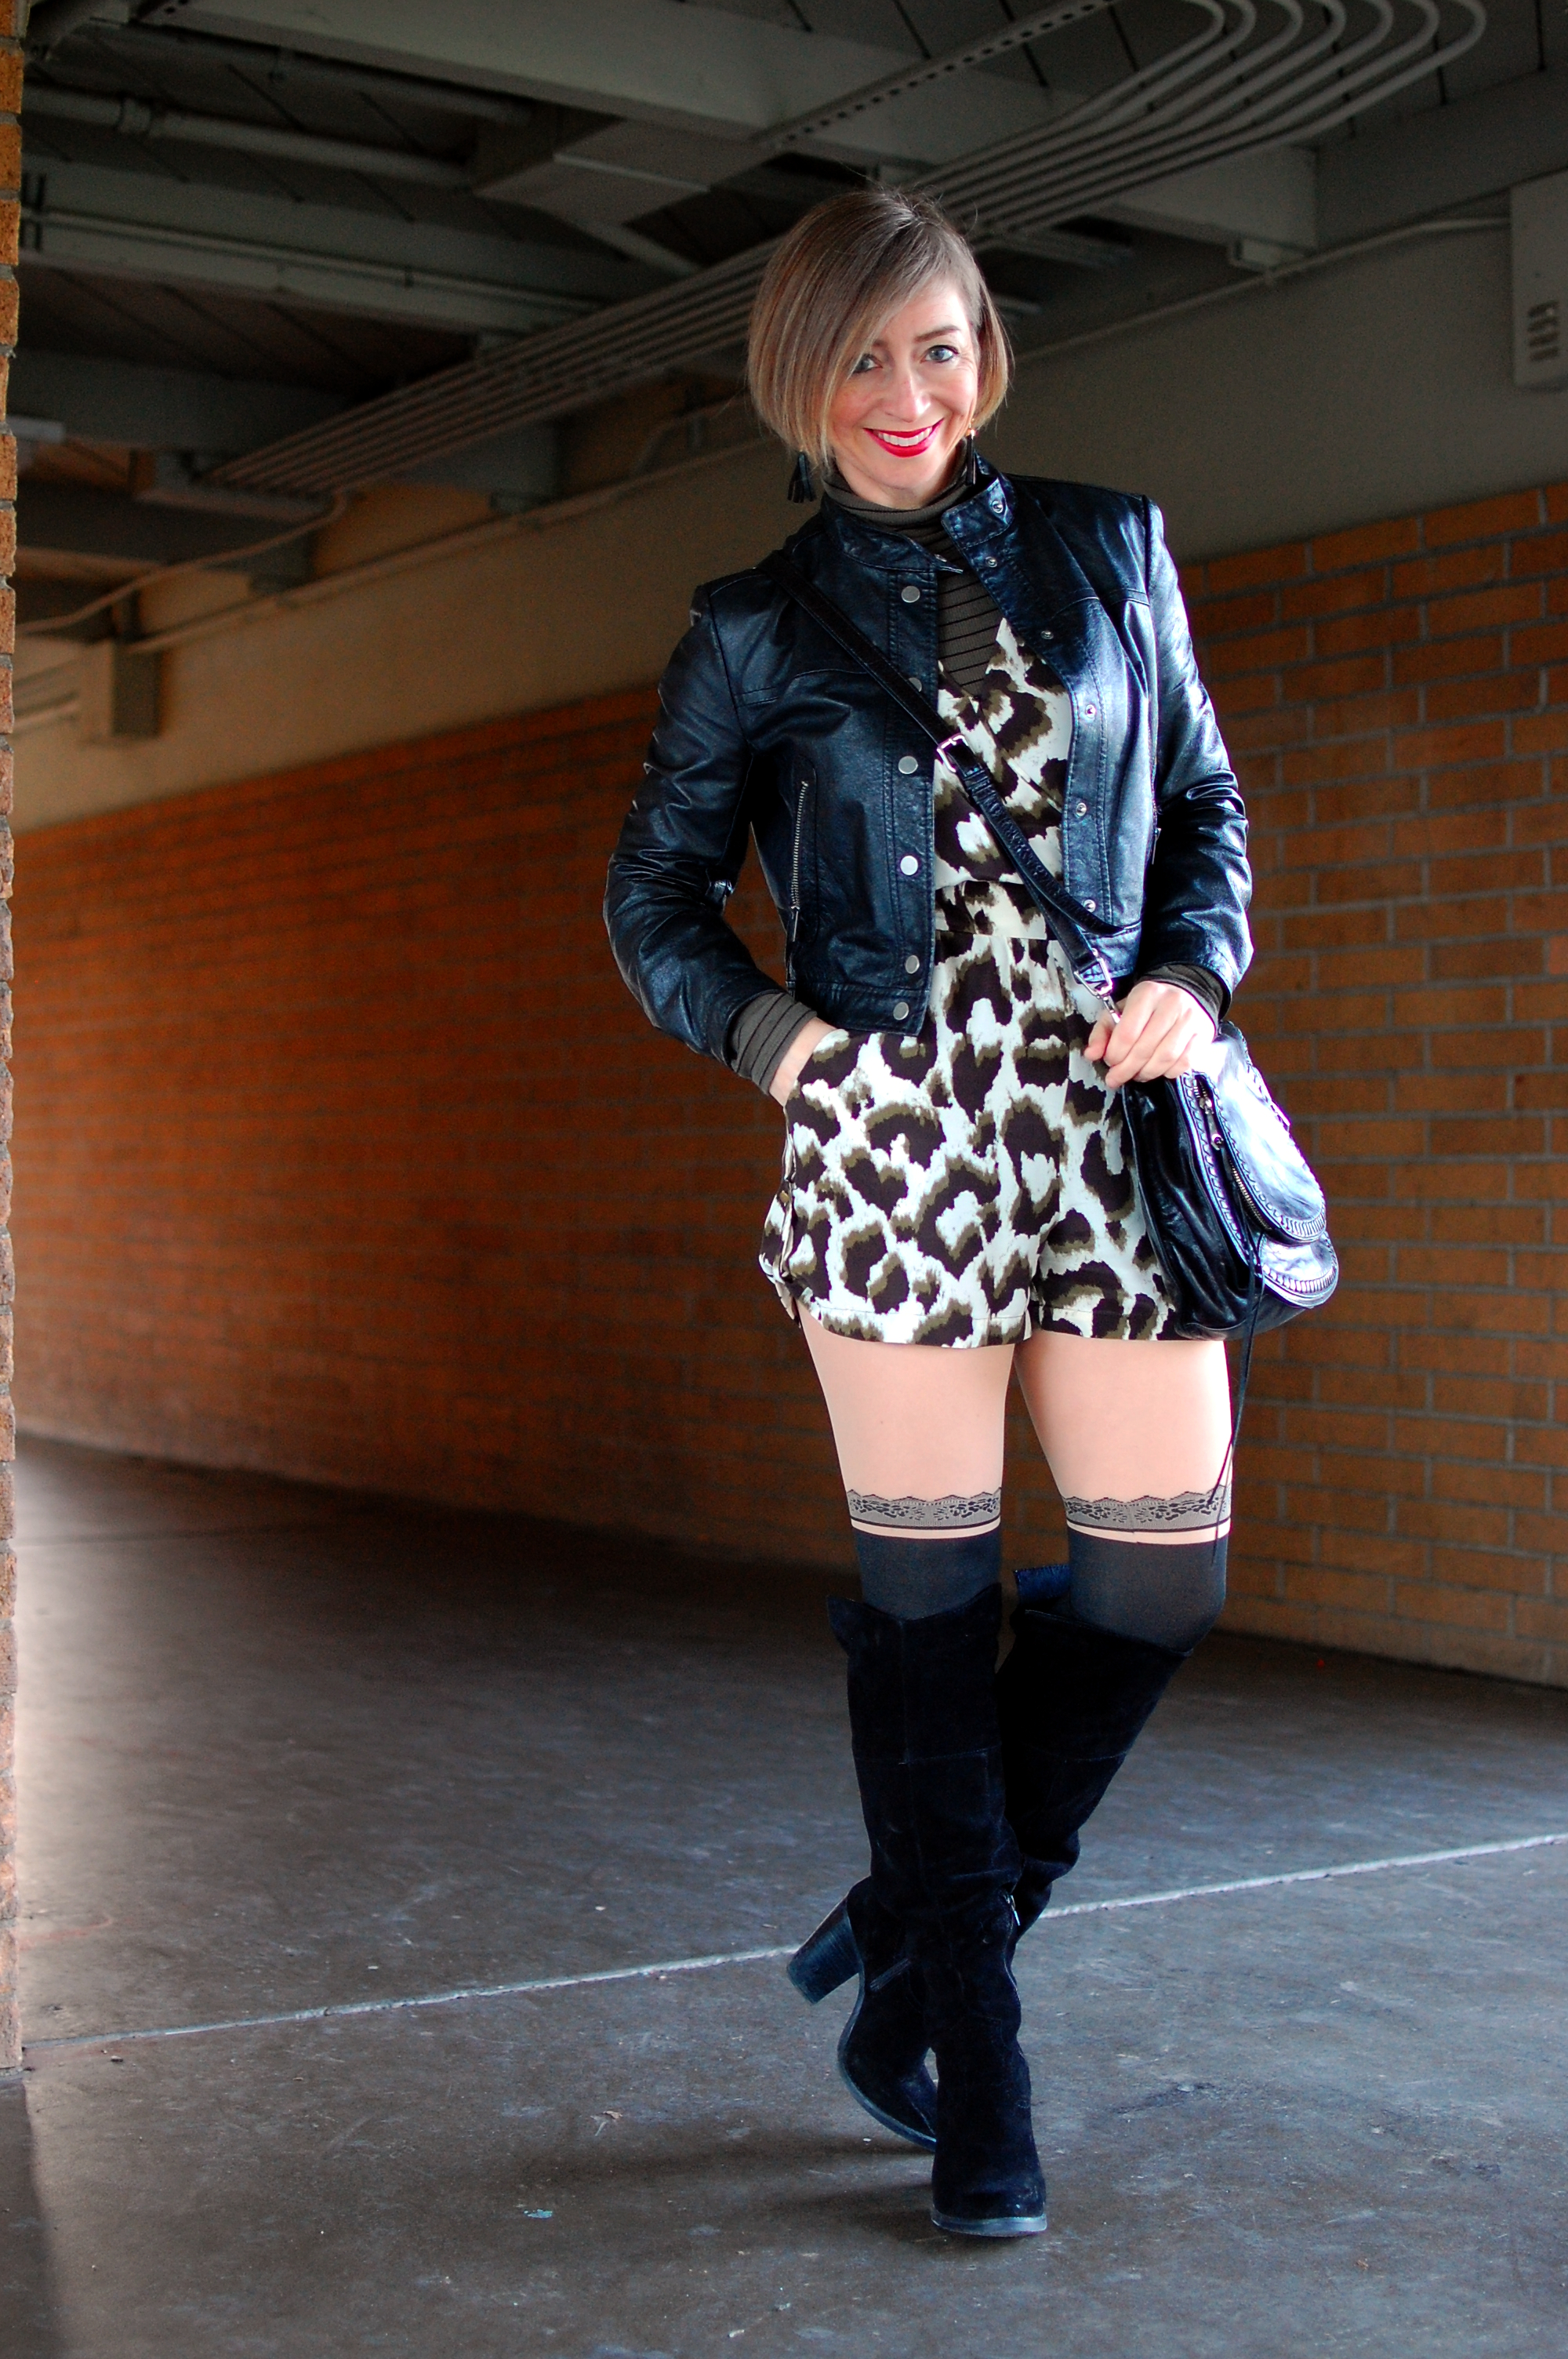 romper leather jacket knee boots suede ootd whatiwore2day